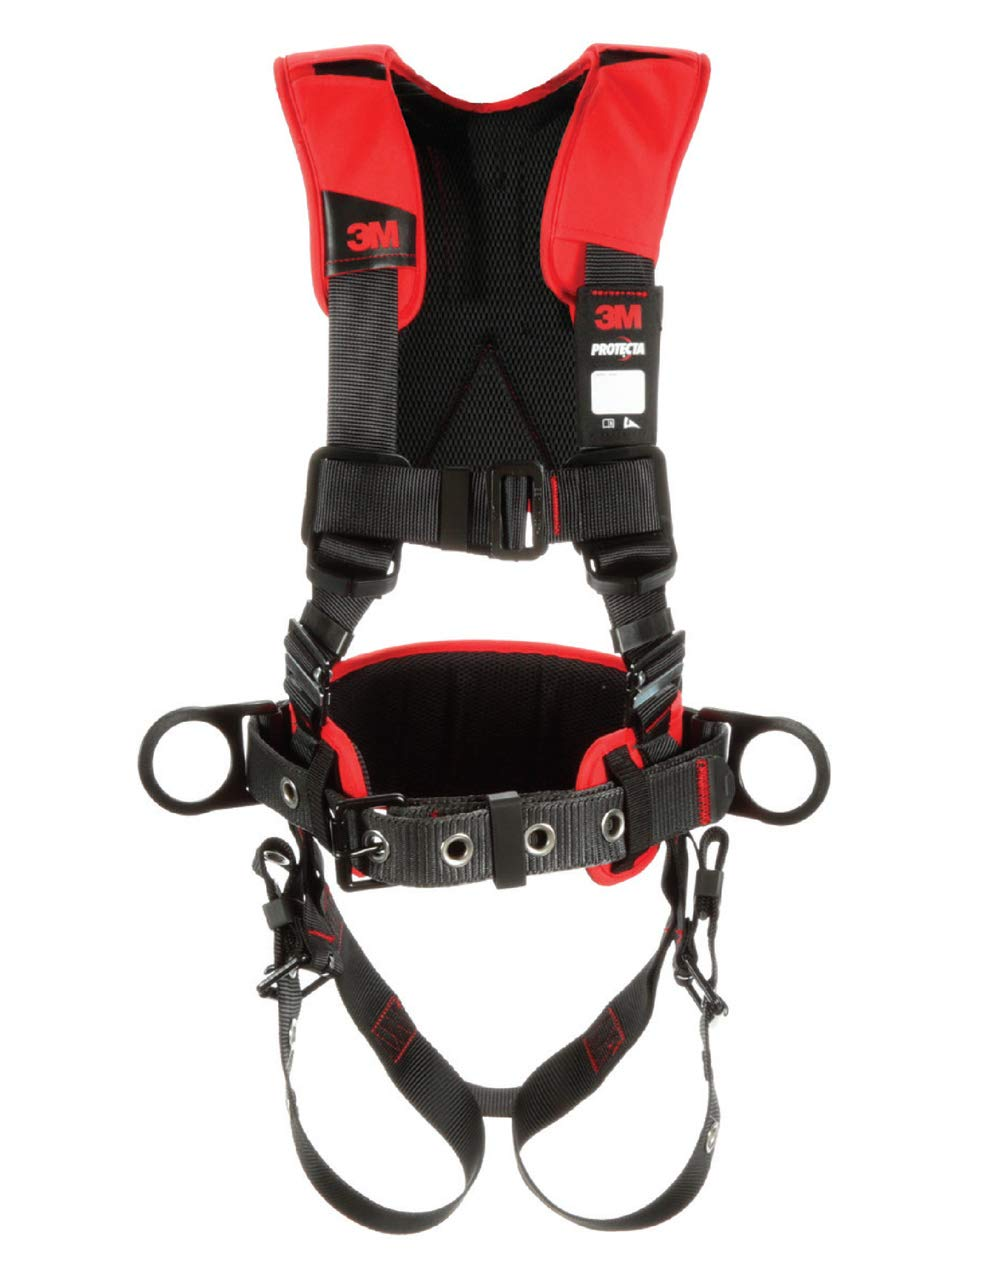 3M Protecta PRO Construction Harness, Back and Side D-Rings, 420 lb. Capacity, X-Large, 1191210 by 3M Fall Protection Business